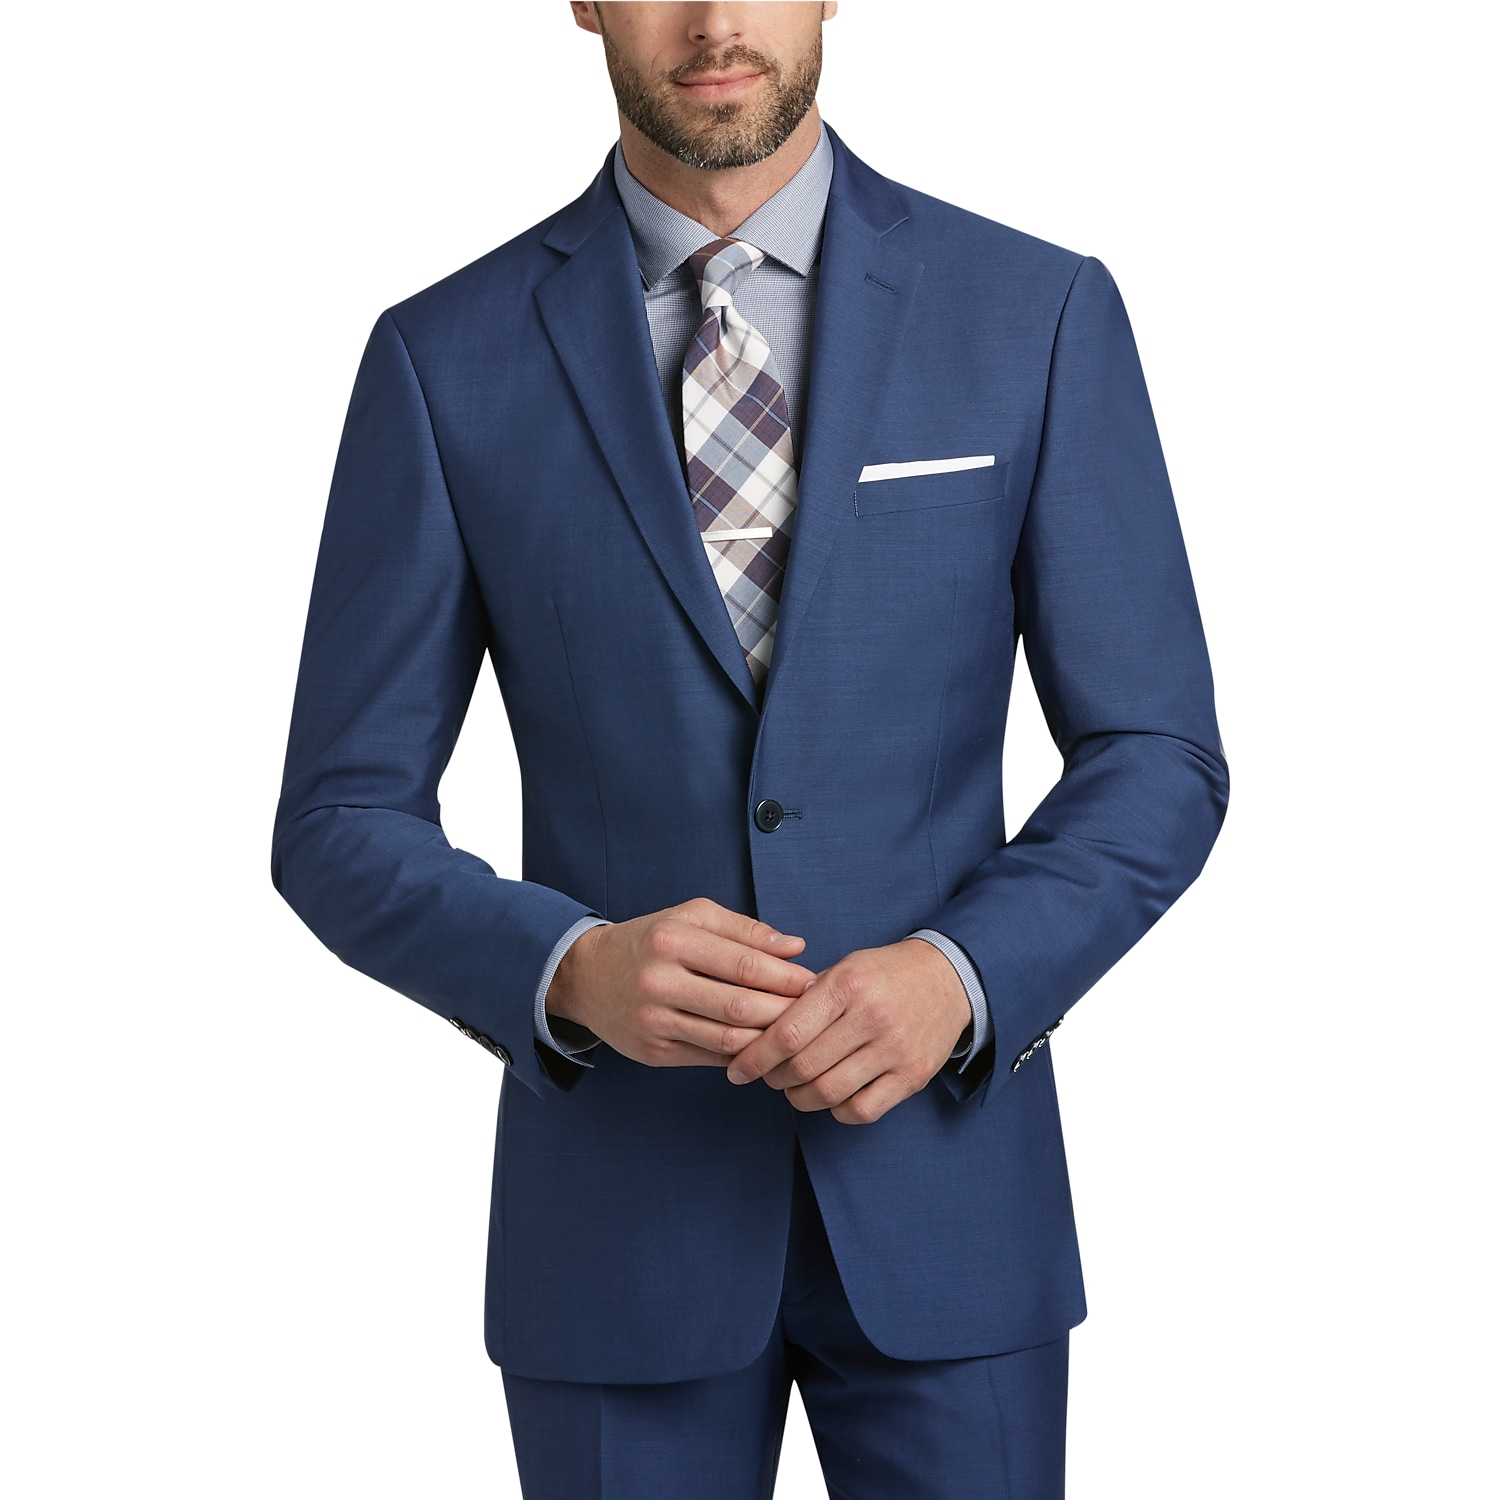 Mens Modern Fit, Suits - Calvin Klein Blue Postman Slim Fit Suit - Men s  Wearhouse d5e2eda148